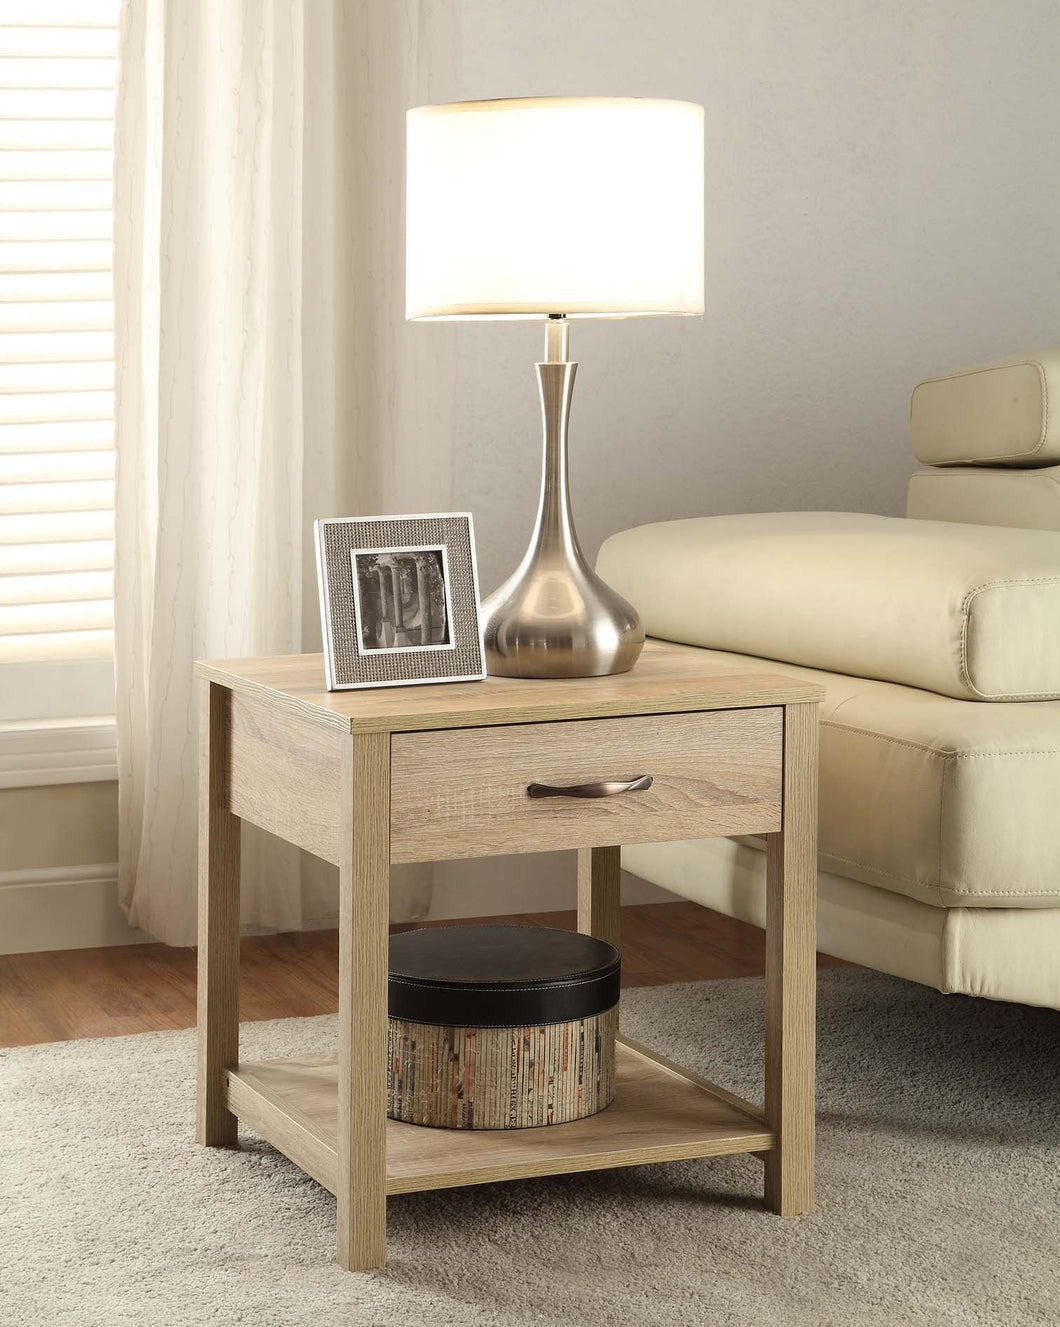 Aspen End Table in Blonde Finish